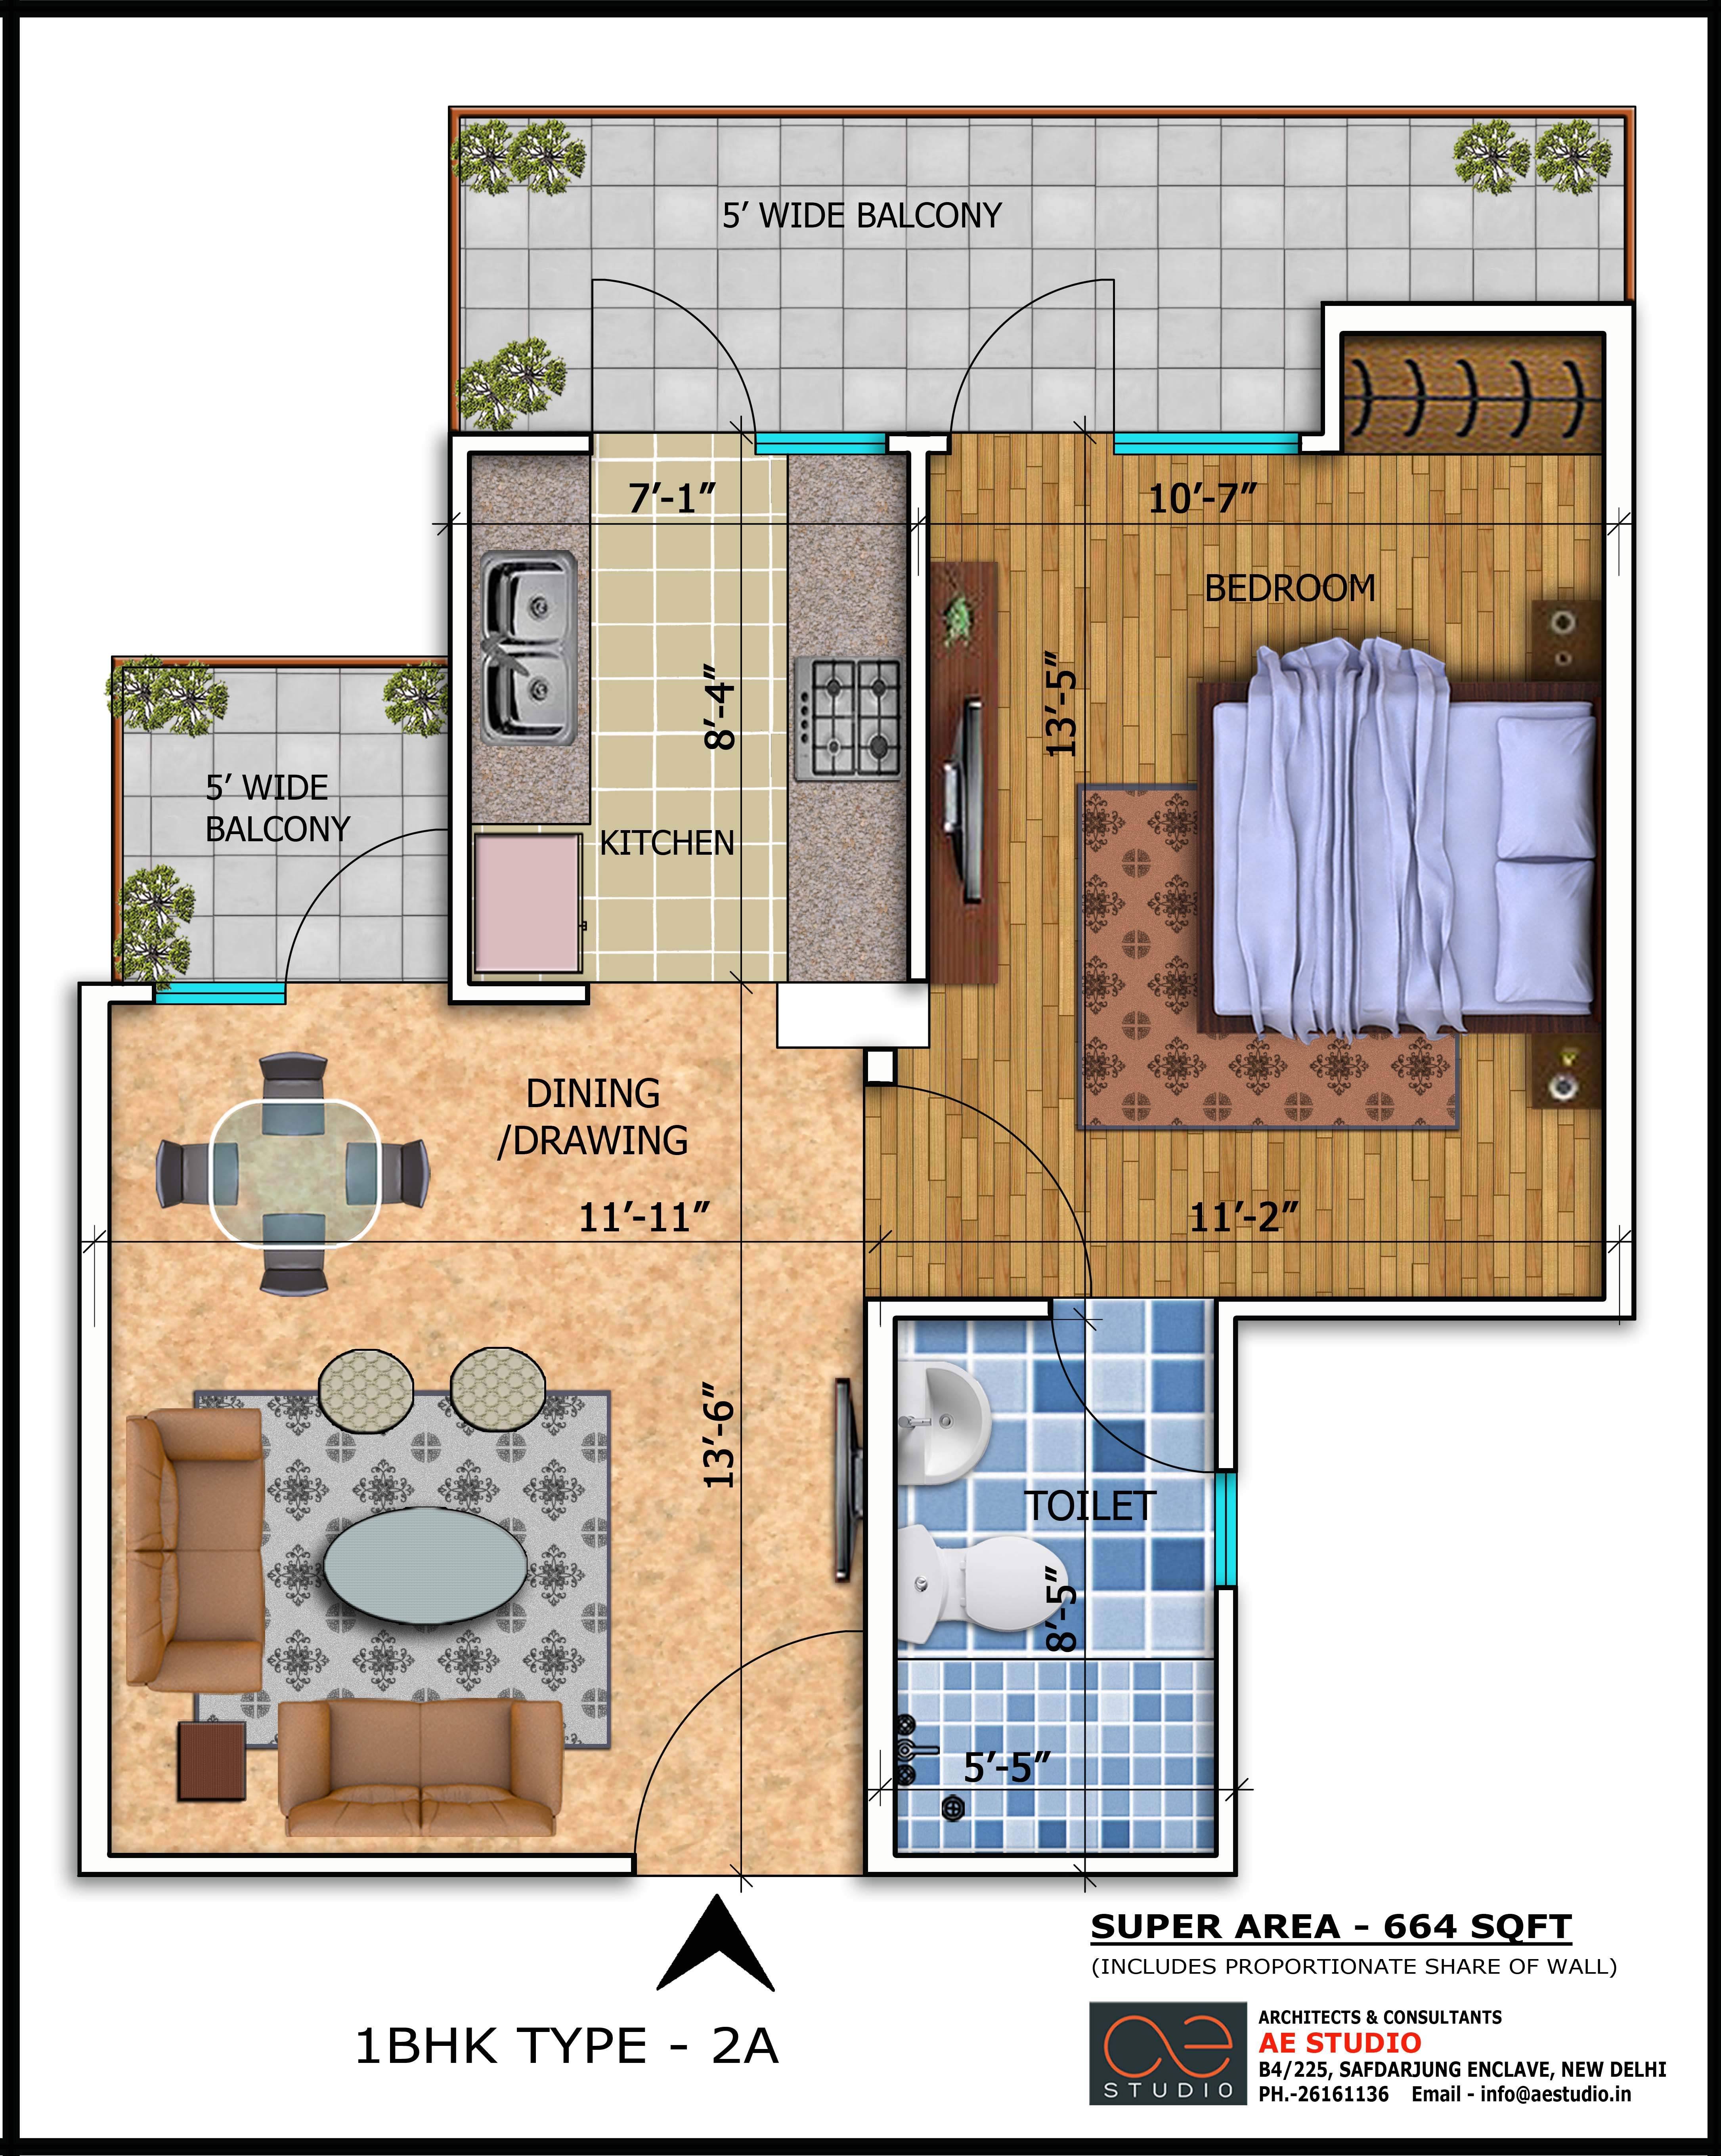 1BHK TYPE 2A